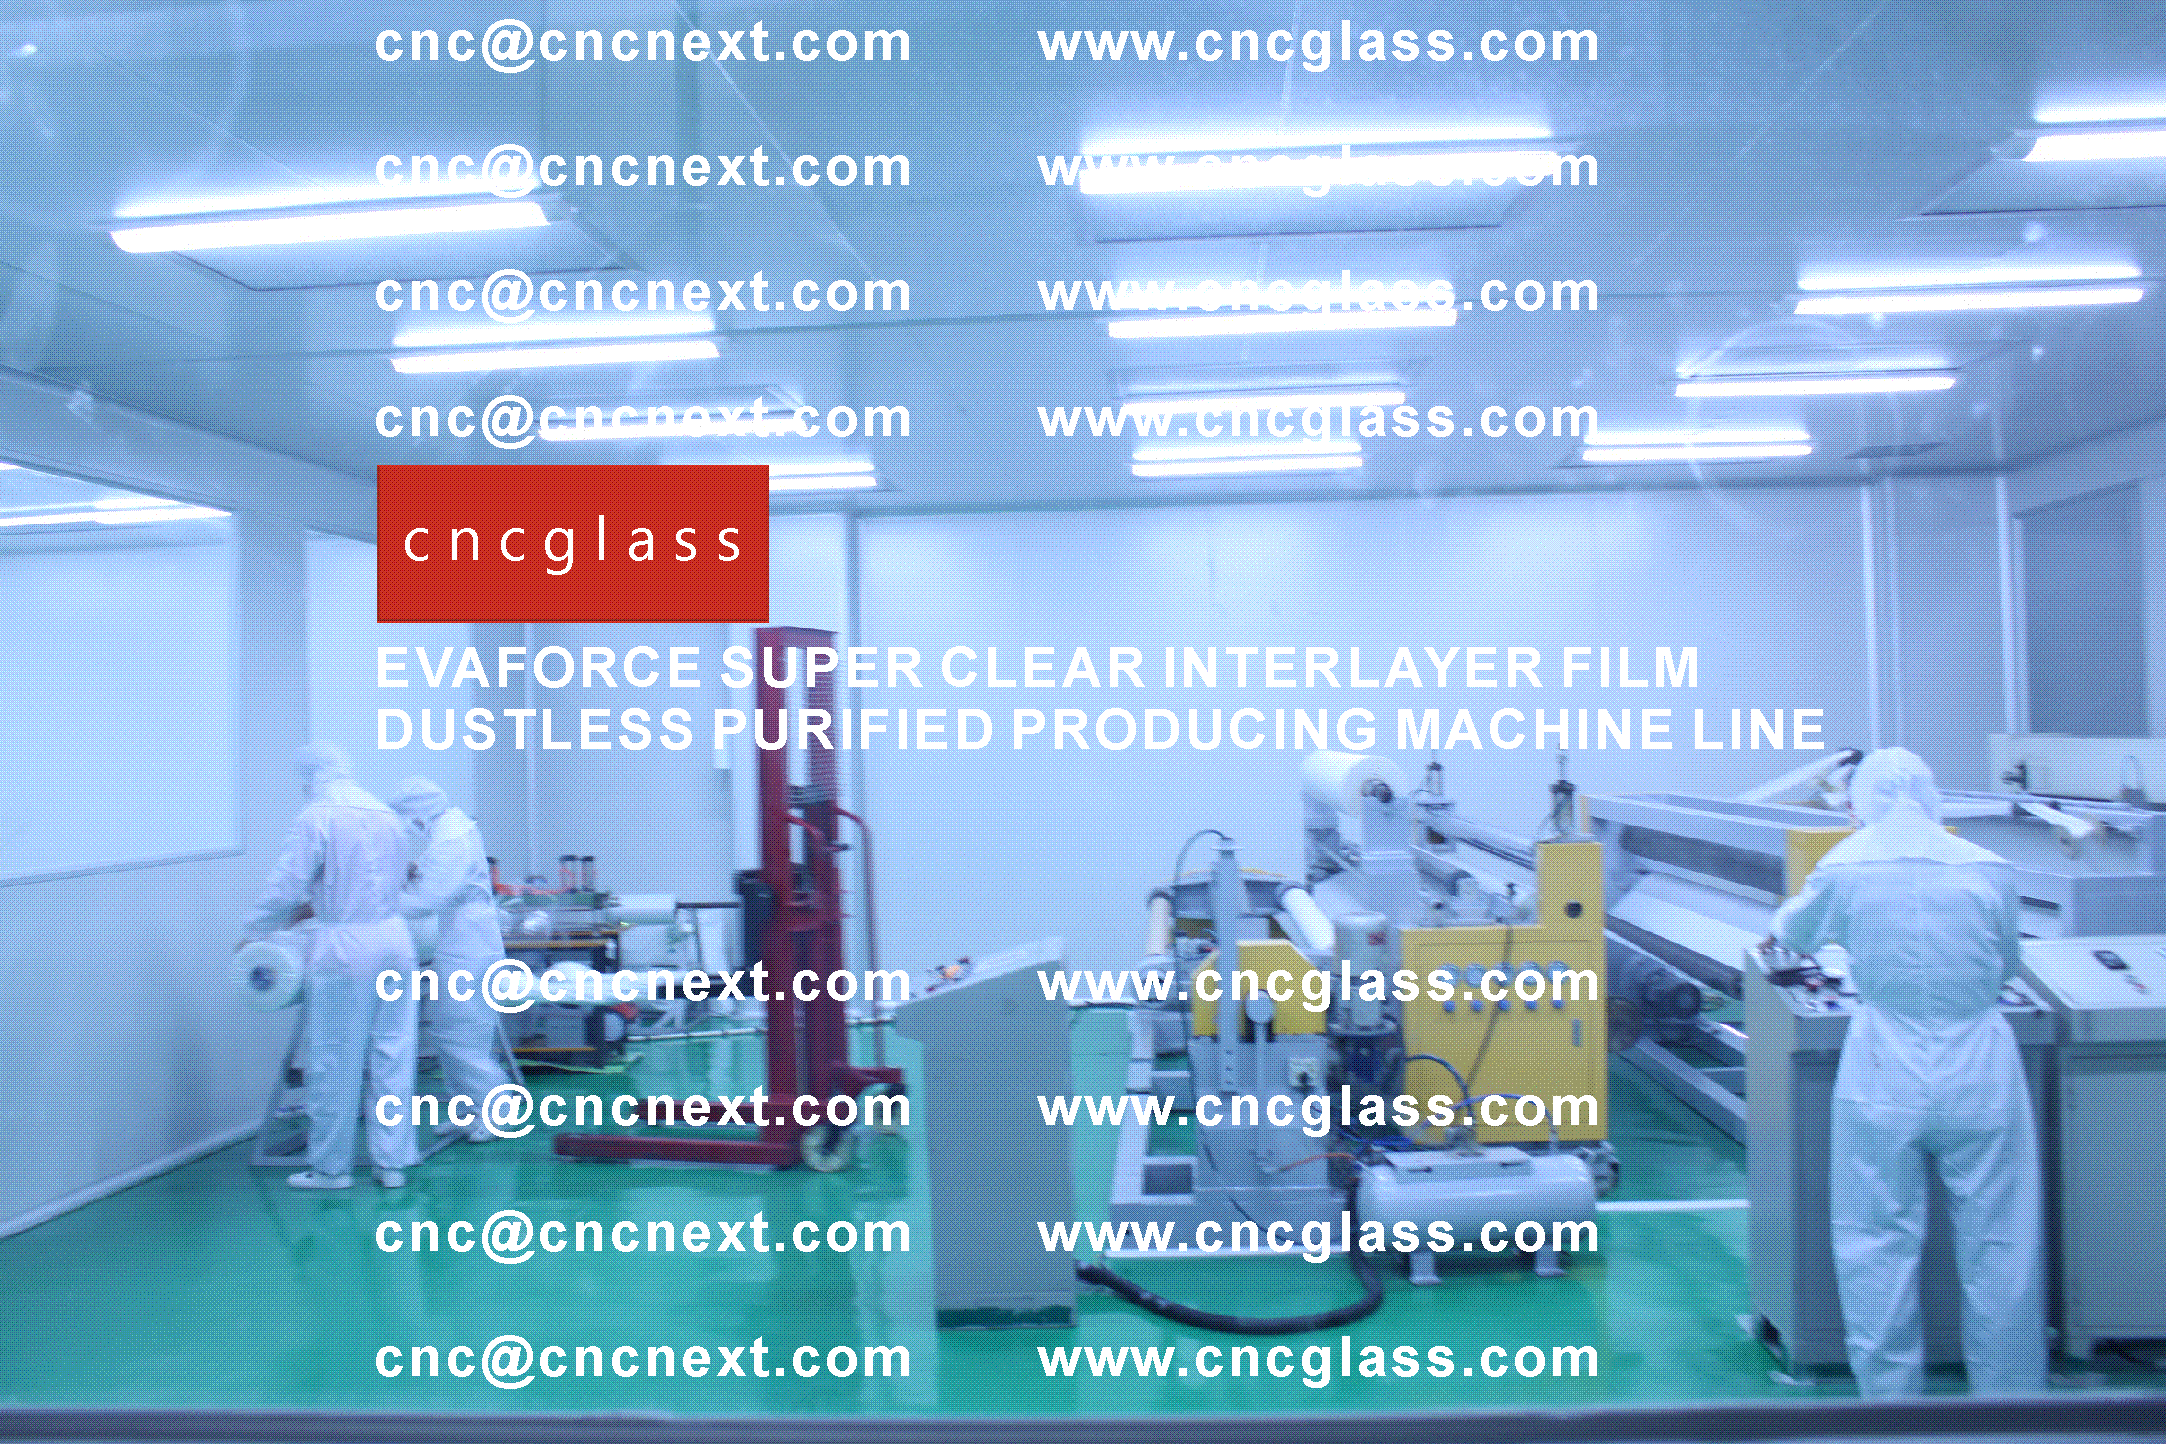 007 EVAFORCE SUPER CLEAR INTERLAYER FILM PRODUCING MACHINE LINE